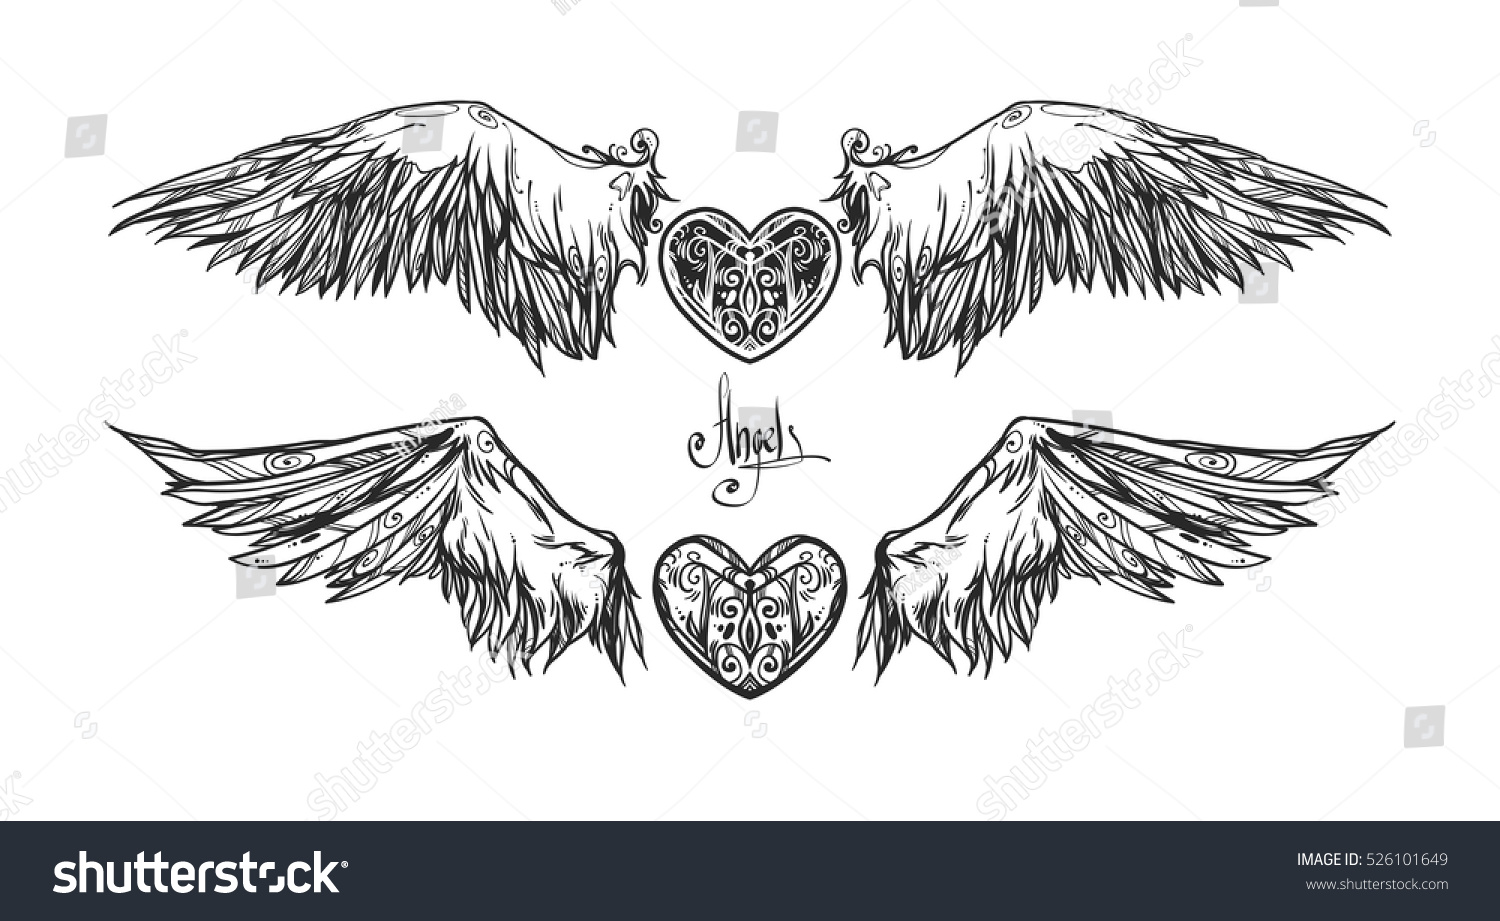 Beautiful Emblem With Wings Graphic Image Illustration Informal Attributes It Can Be Used For Printing On T-Shirts Or Ideas For Tattoos